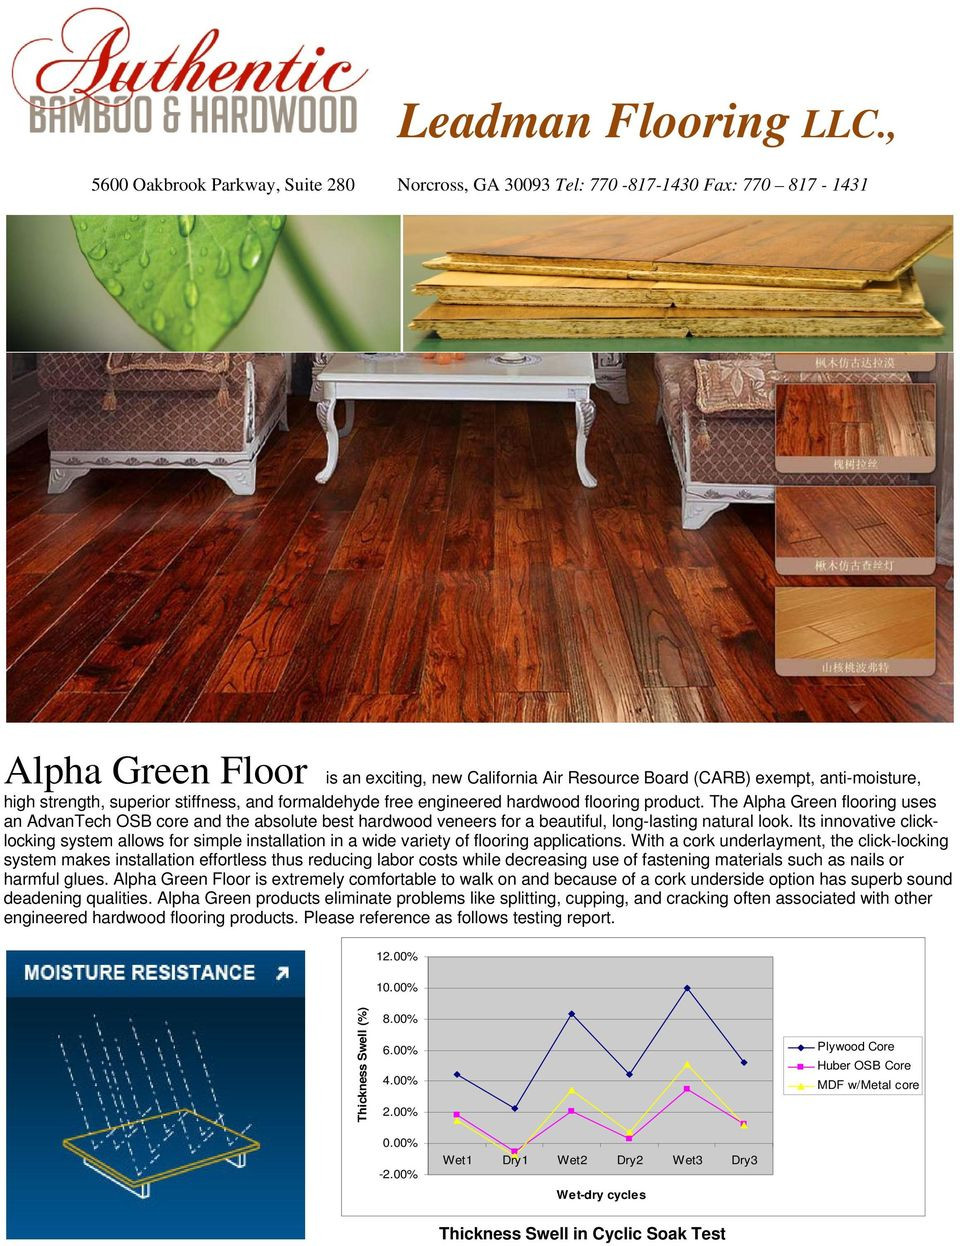 engineered hardwood flooring manufacturers canada of leadman flooring llc pdf in strength superior stiffness and formaldehyde free engineered hardwood flooring product